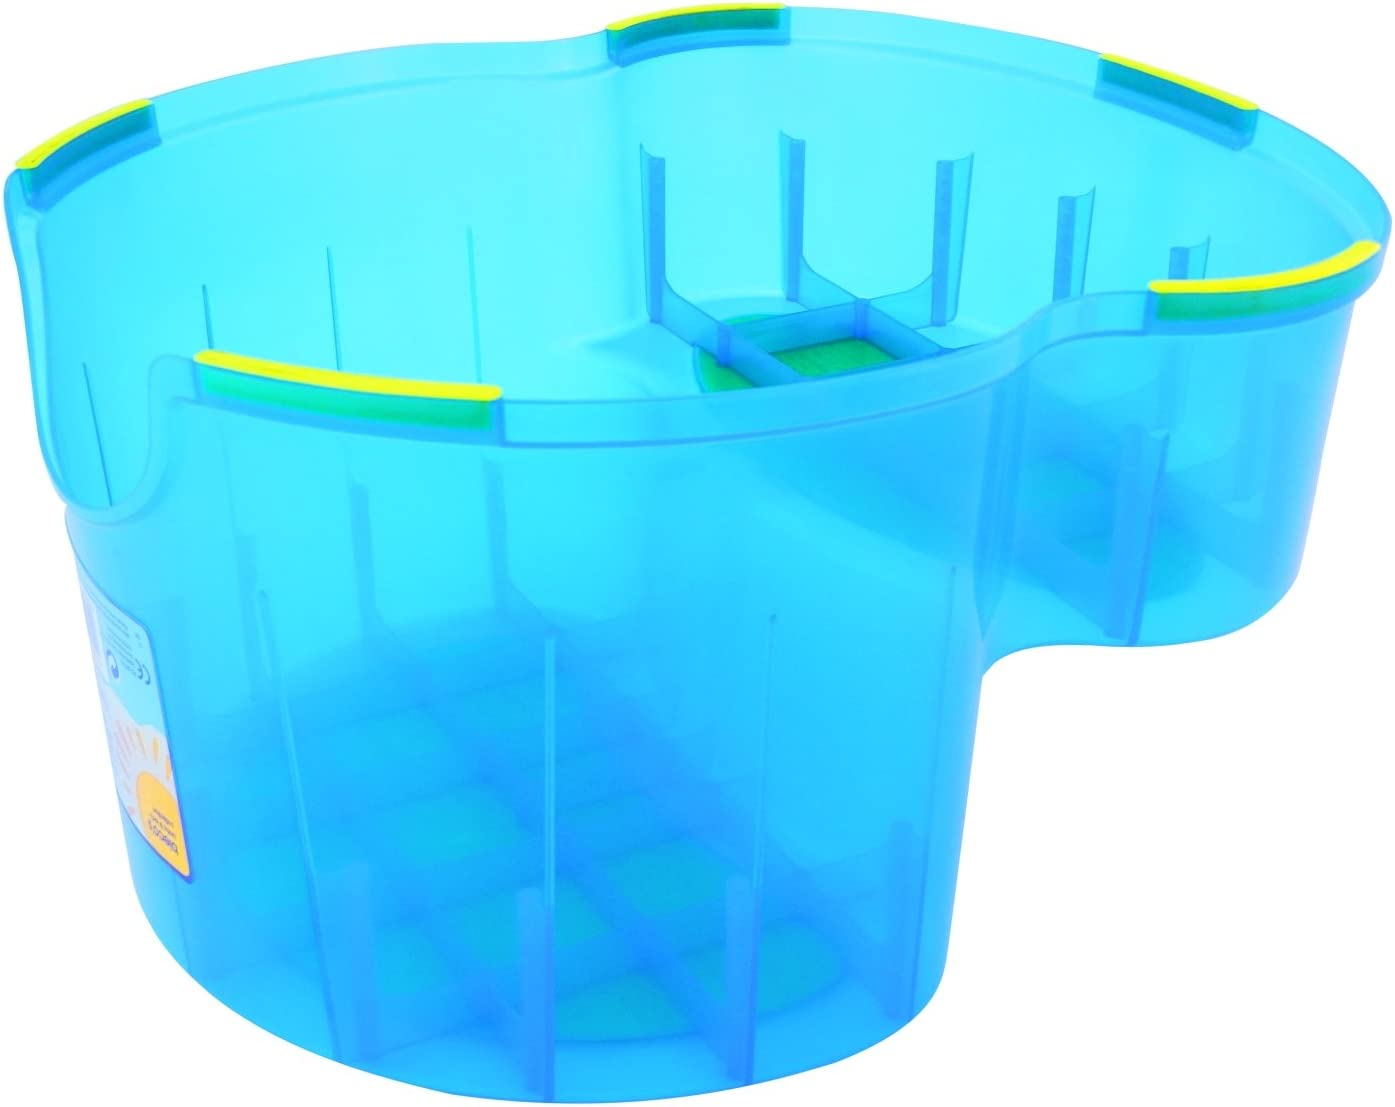 About 39 x 34 x 20 cm Blue Bieco 79000112 Seat//Kick Two Stages Each About 10cm